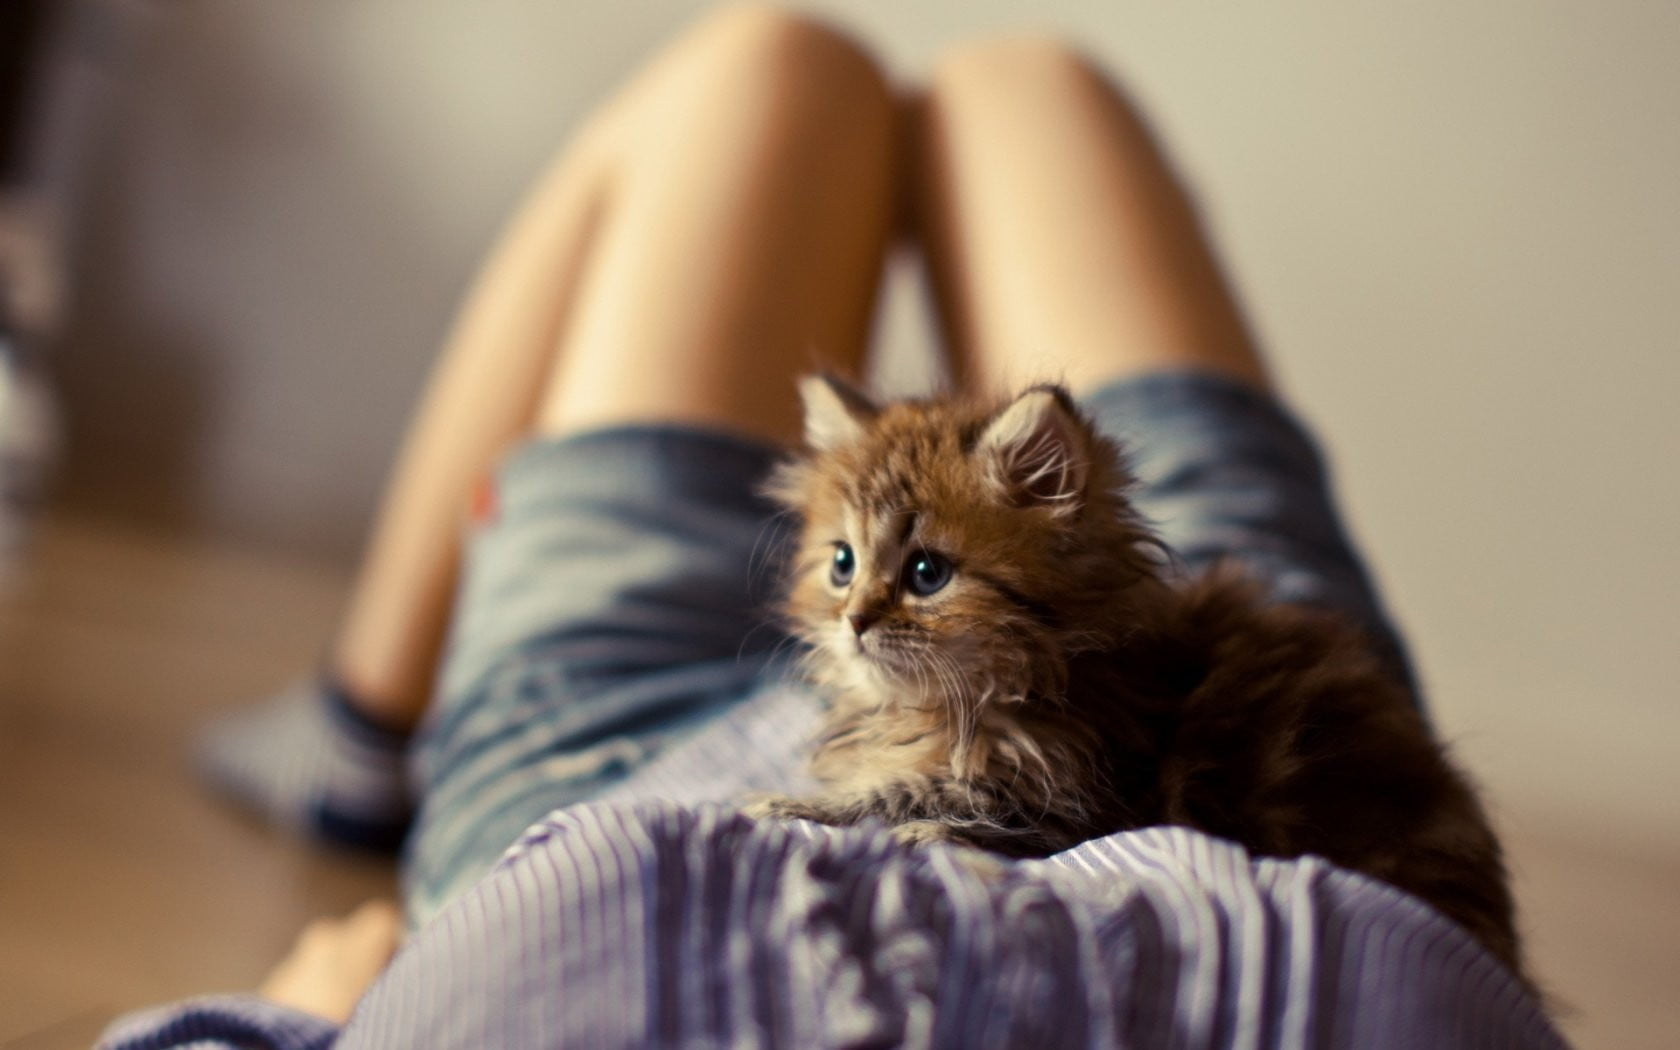 Using Your Cat or Dog as a Sitter